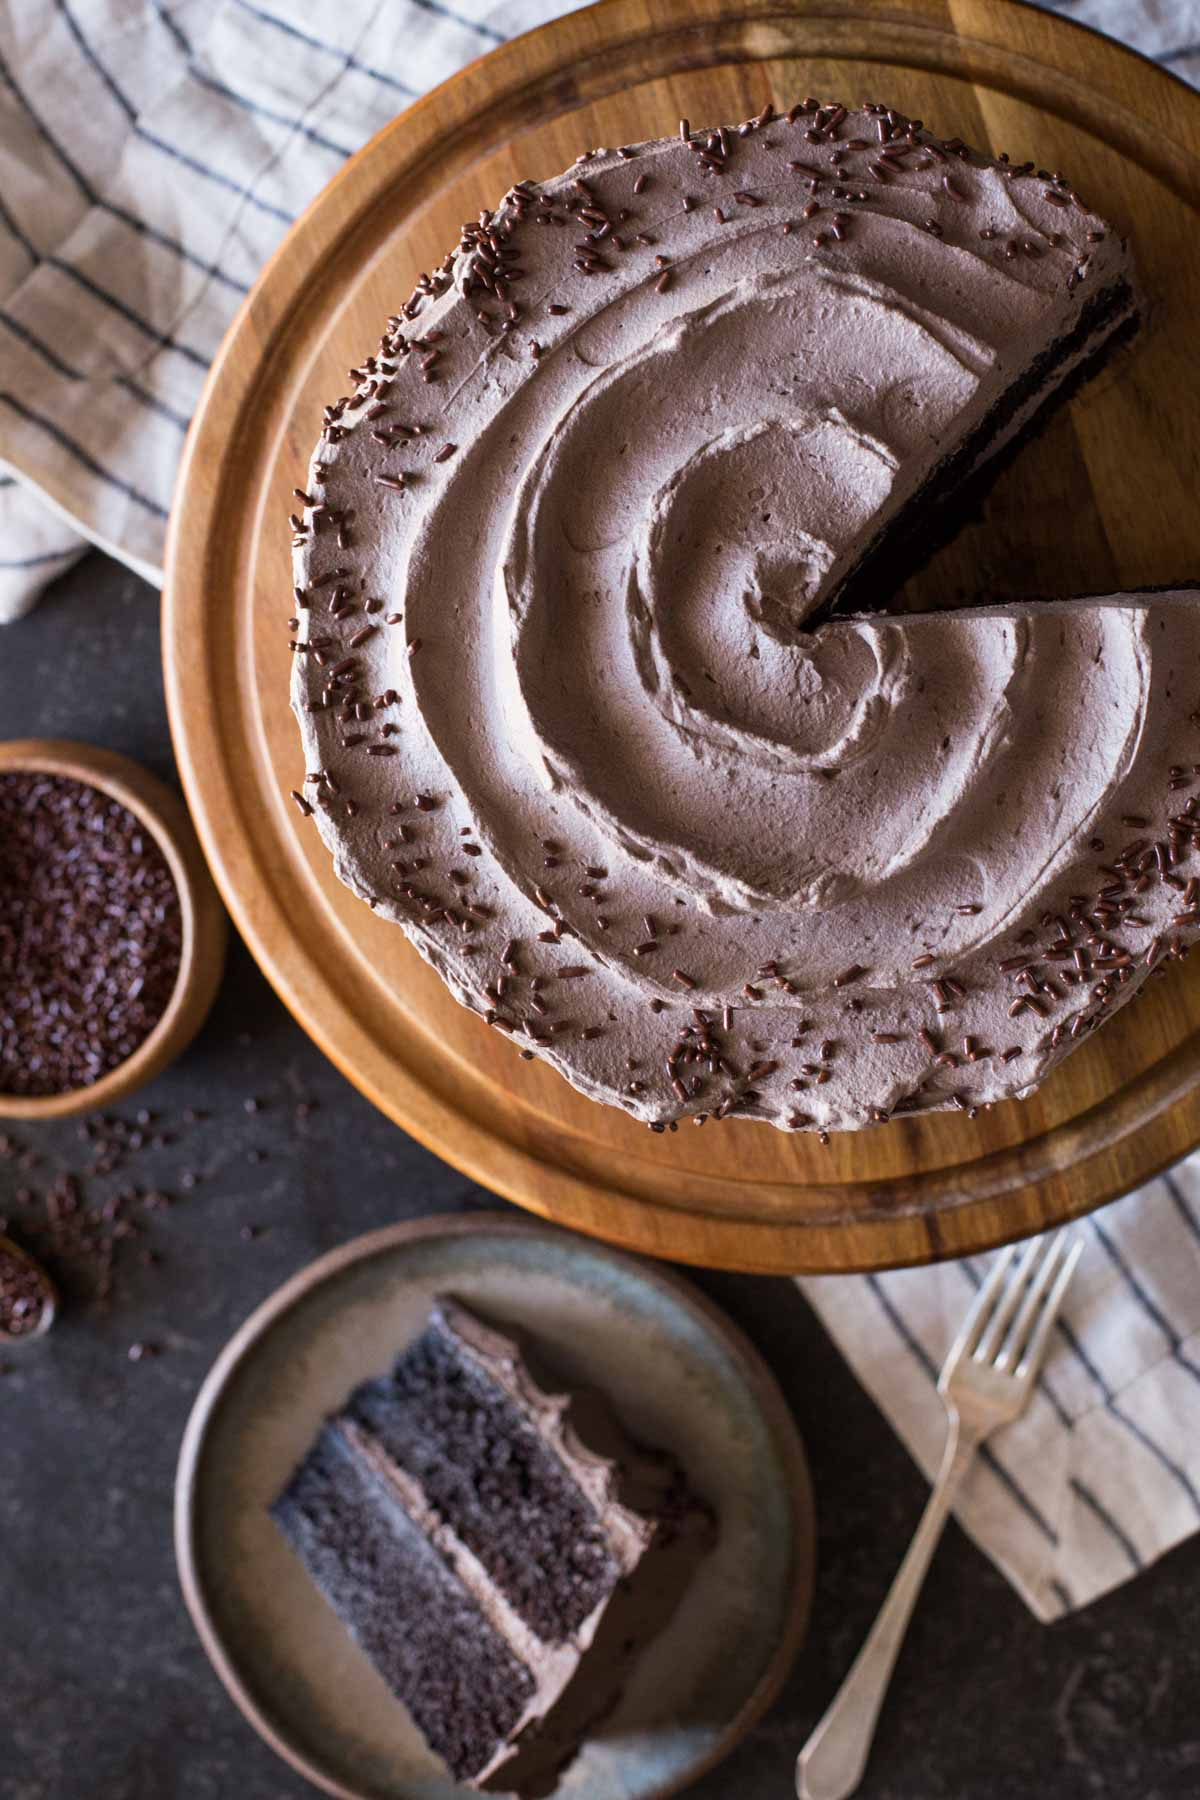 A slice of Dark Chocolate Cake With Whipped Cream Frosting on a plate, sitting next to the rest of the cake on a cake stand and a small wood bowl of chocolate sprinkles.